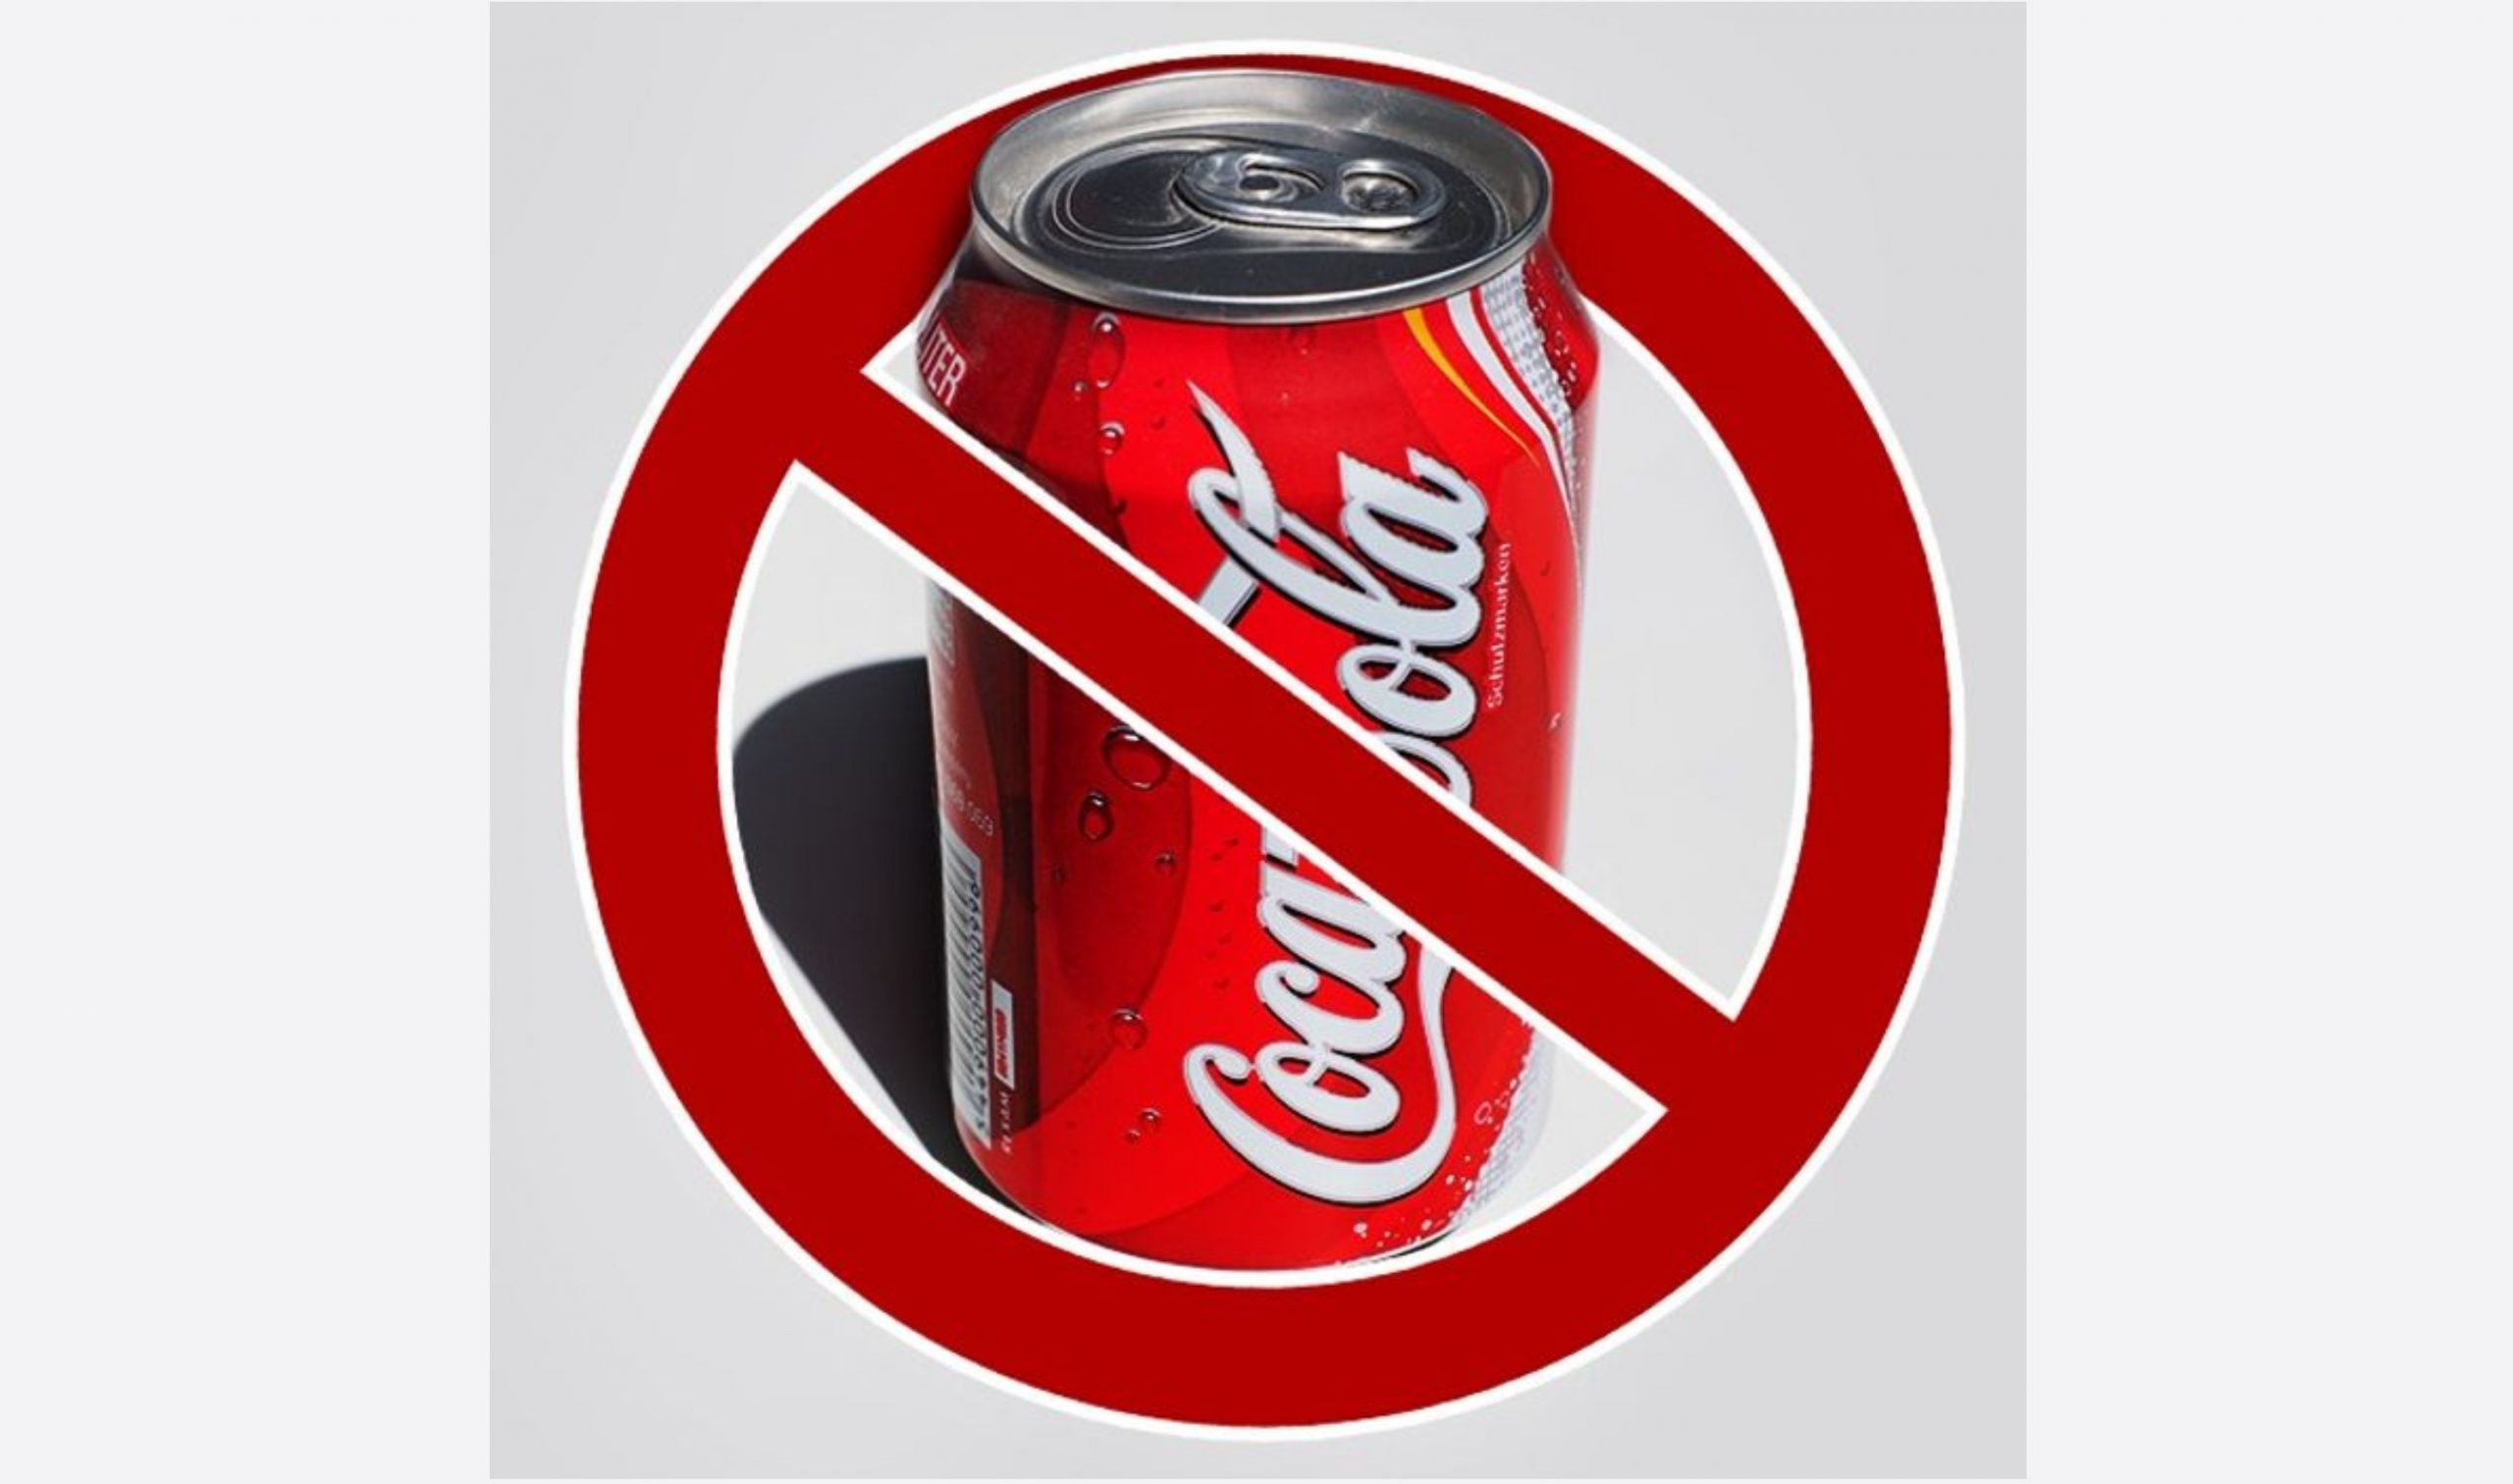 These are two countries where Coca-Cola cannot be bought